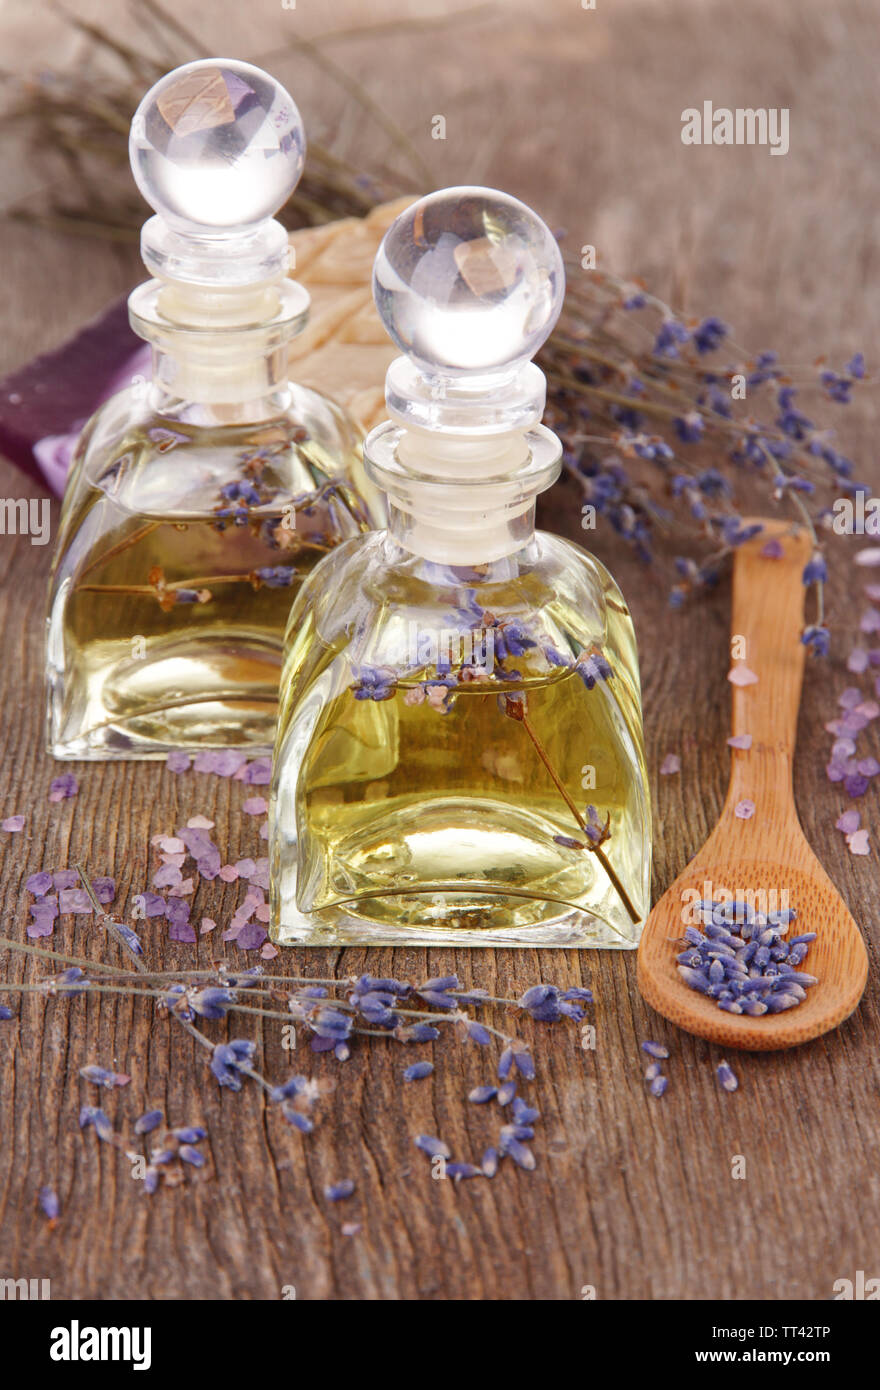 Spa still life with lavender oil and flowers on wooden table - Stock Image